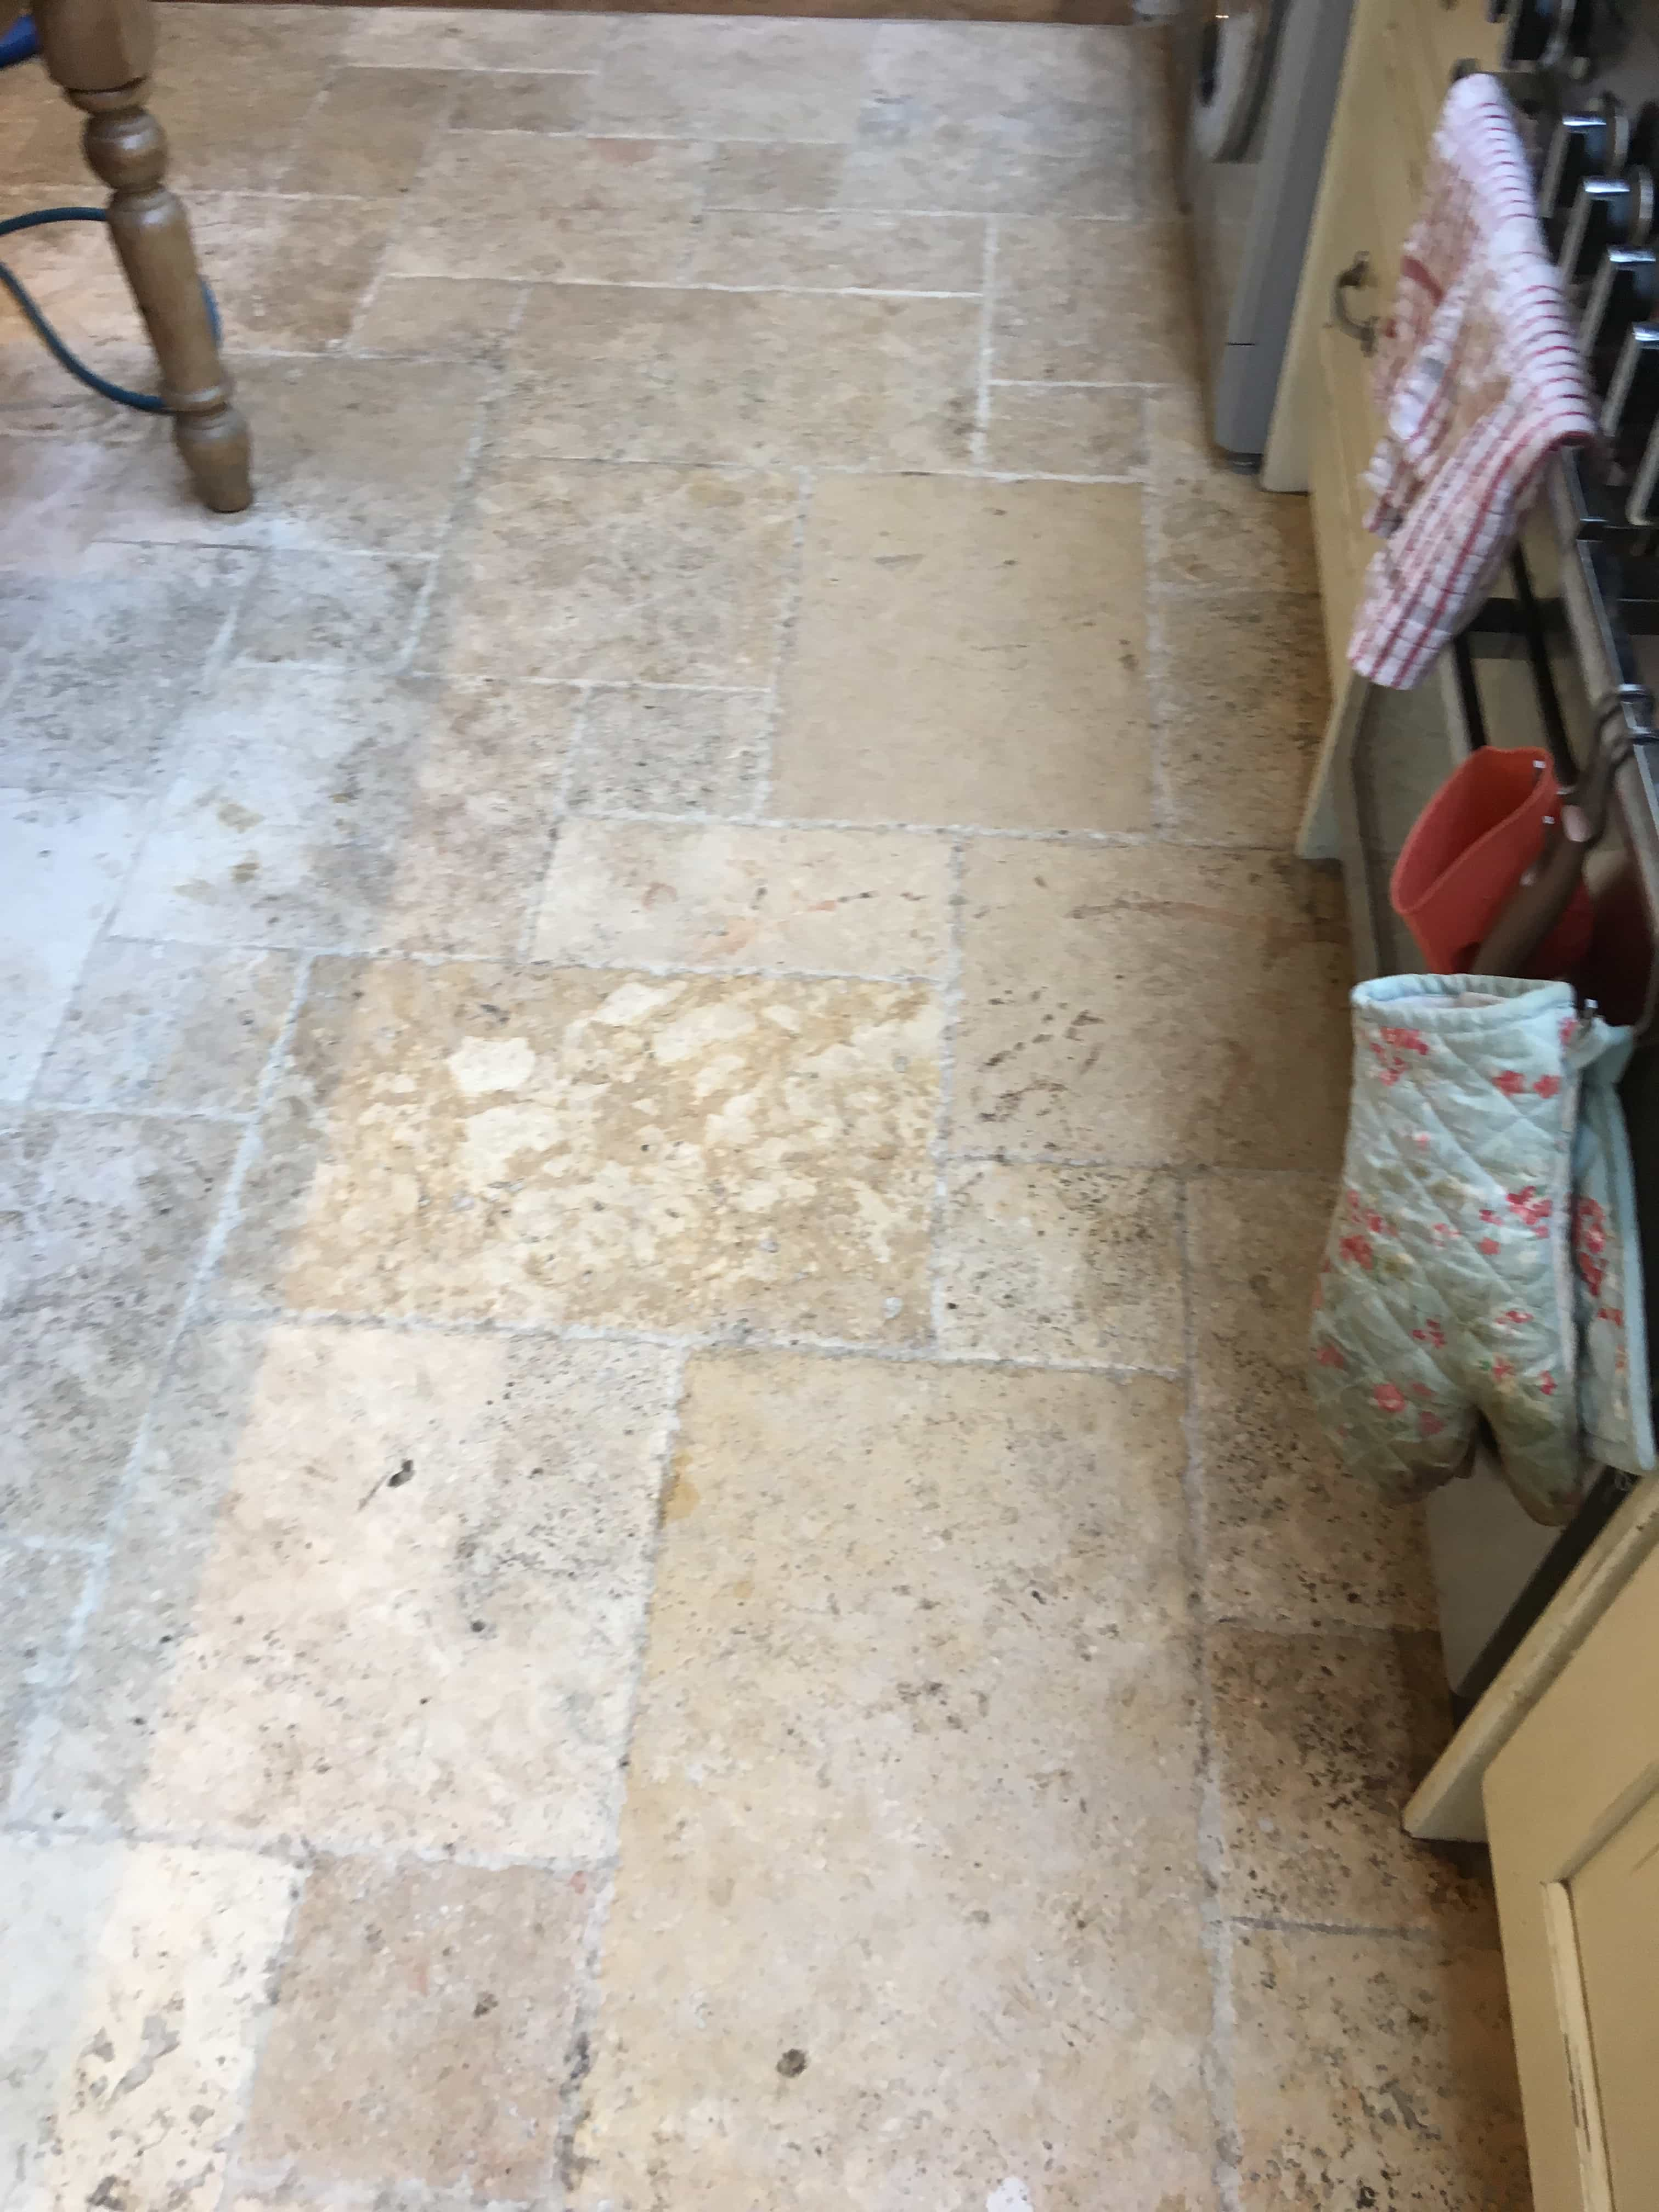 Travertine Tiled Kitchen Floor Before Cleaning Shepperton